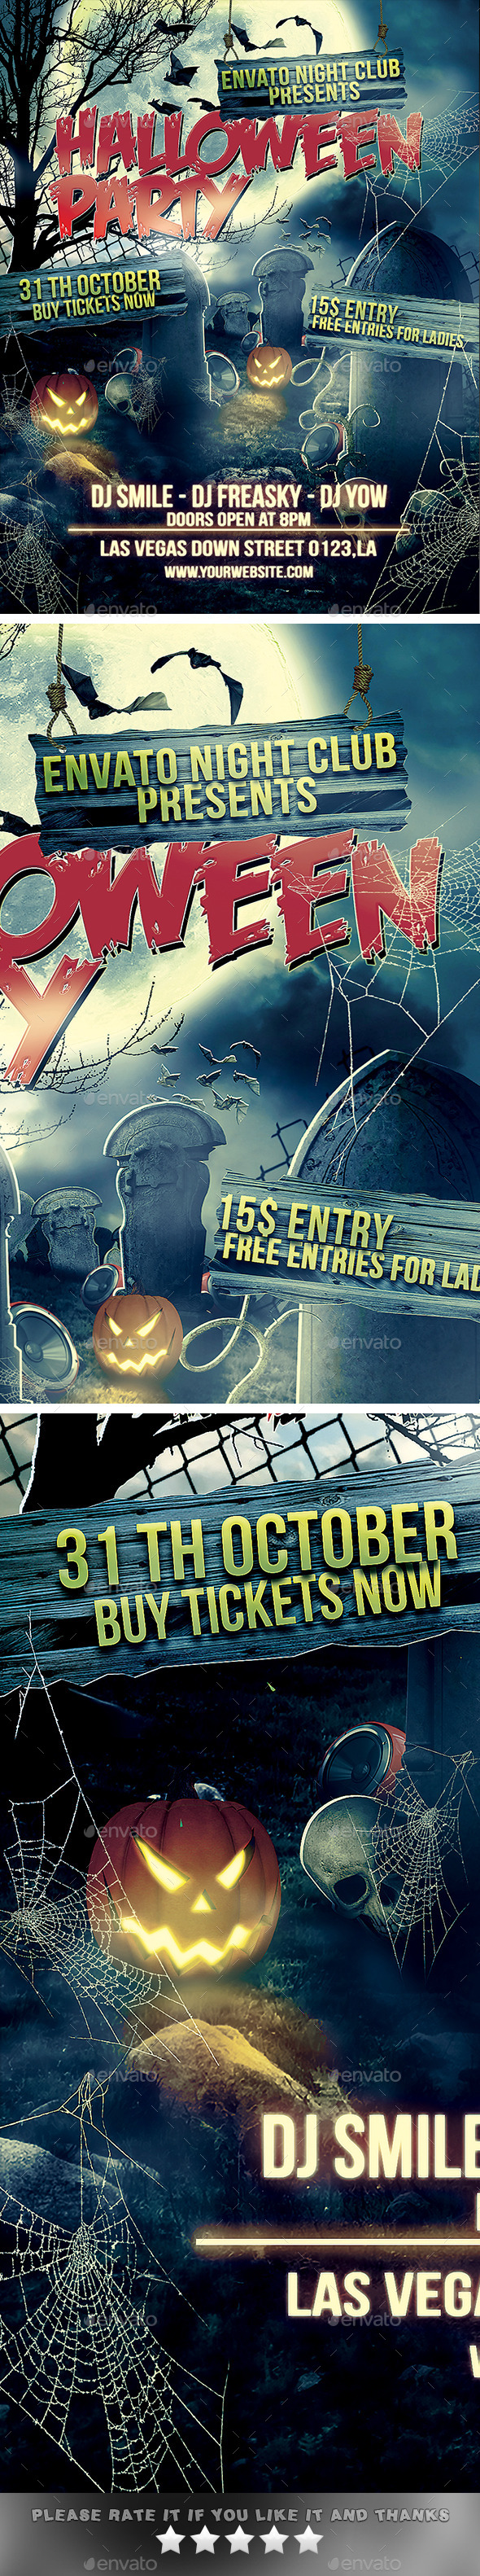 GraphicRiver Halloween Party Flyer 8877233